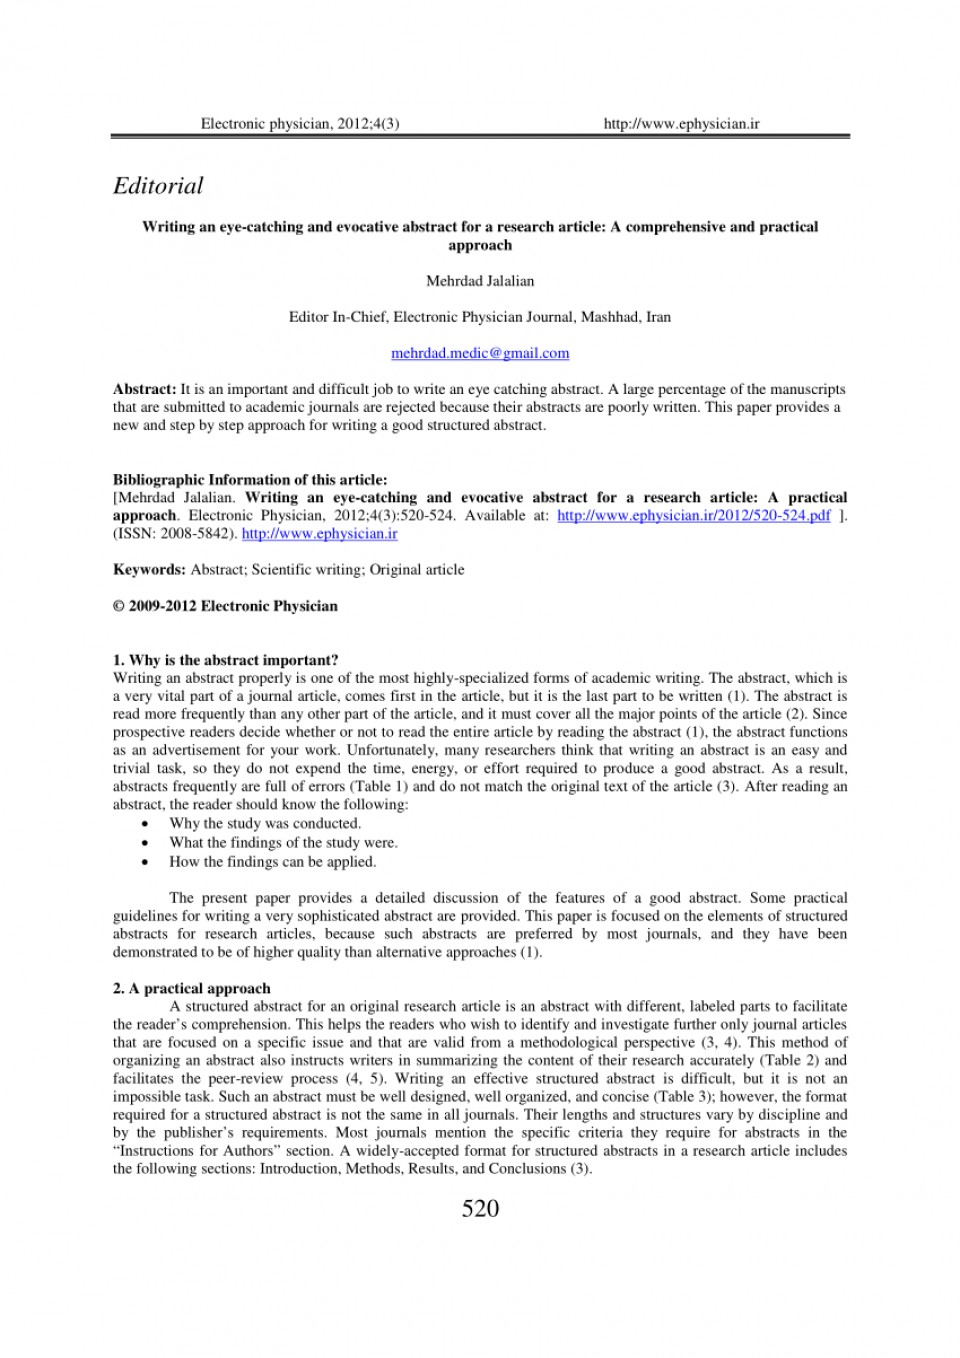 009 How To Write And Publish Scientific Research Paper Pdf Surprising A 960